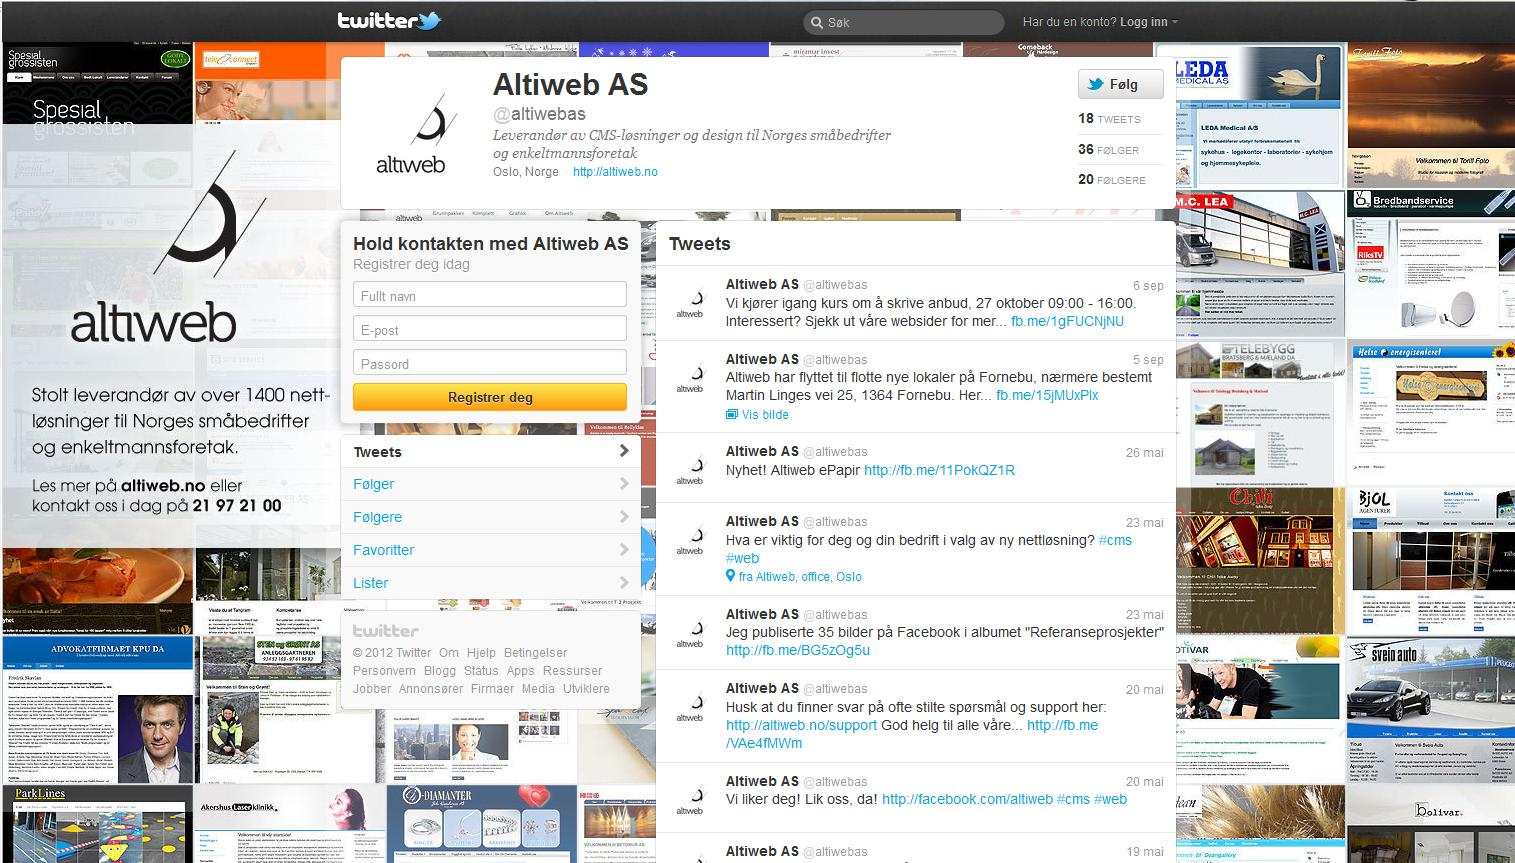 Altiweb AS Twitter